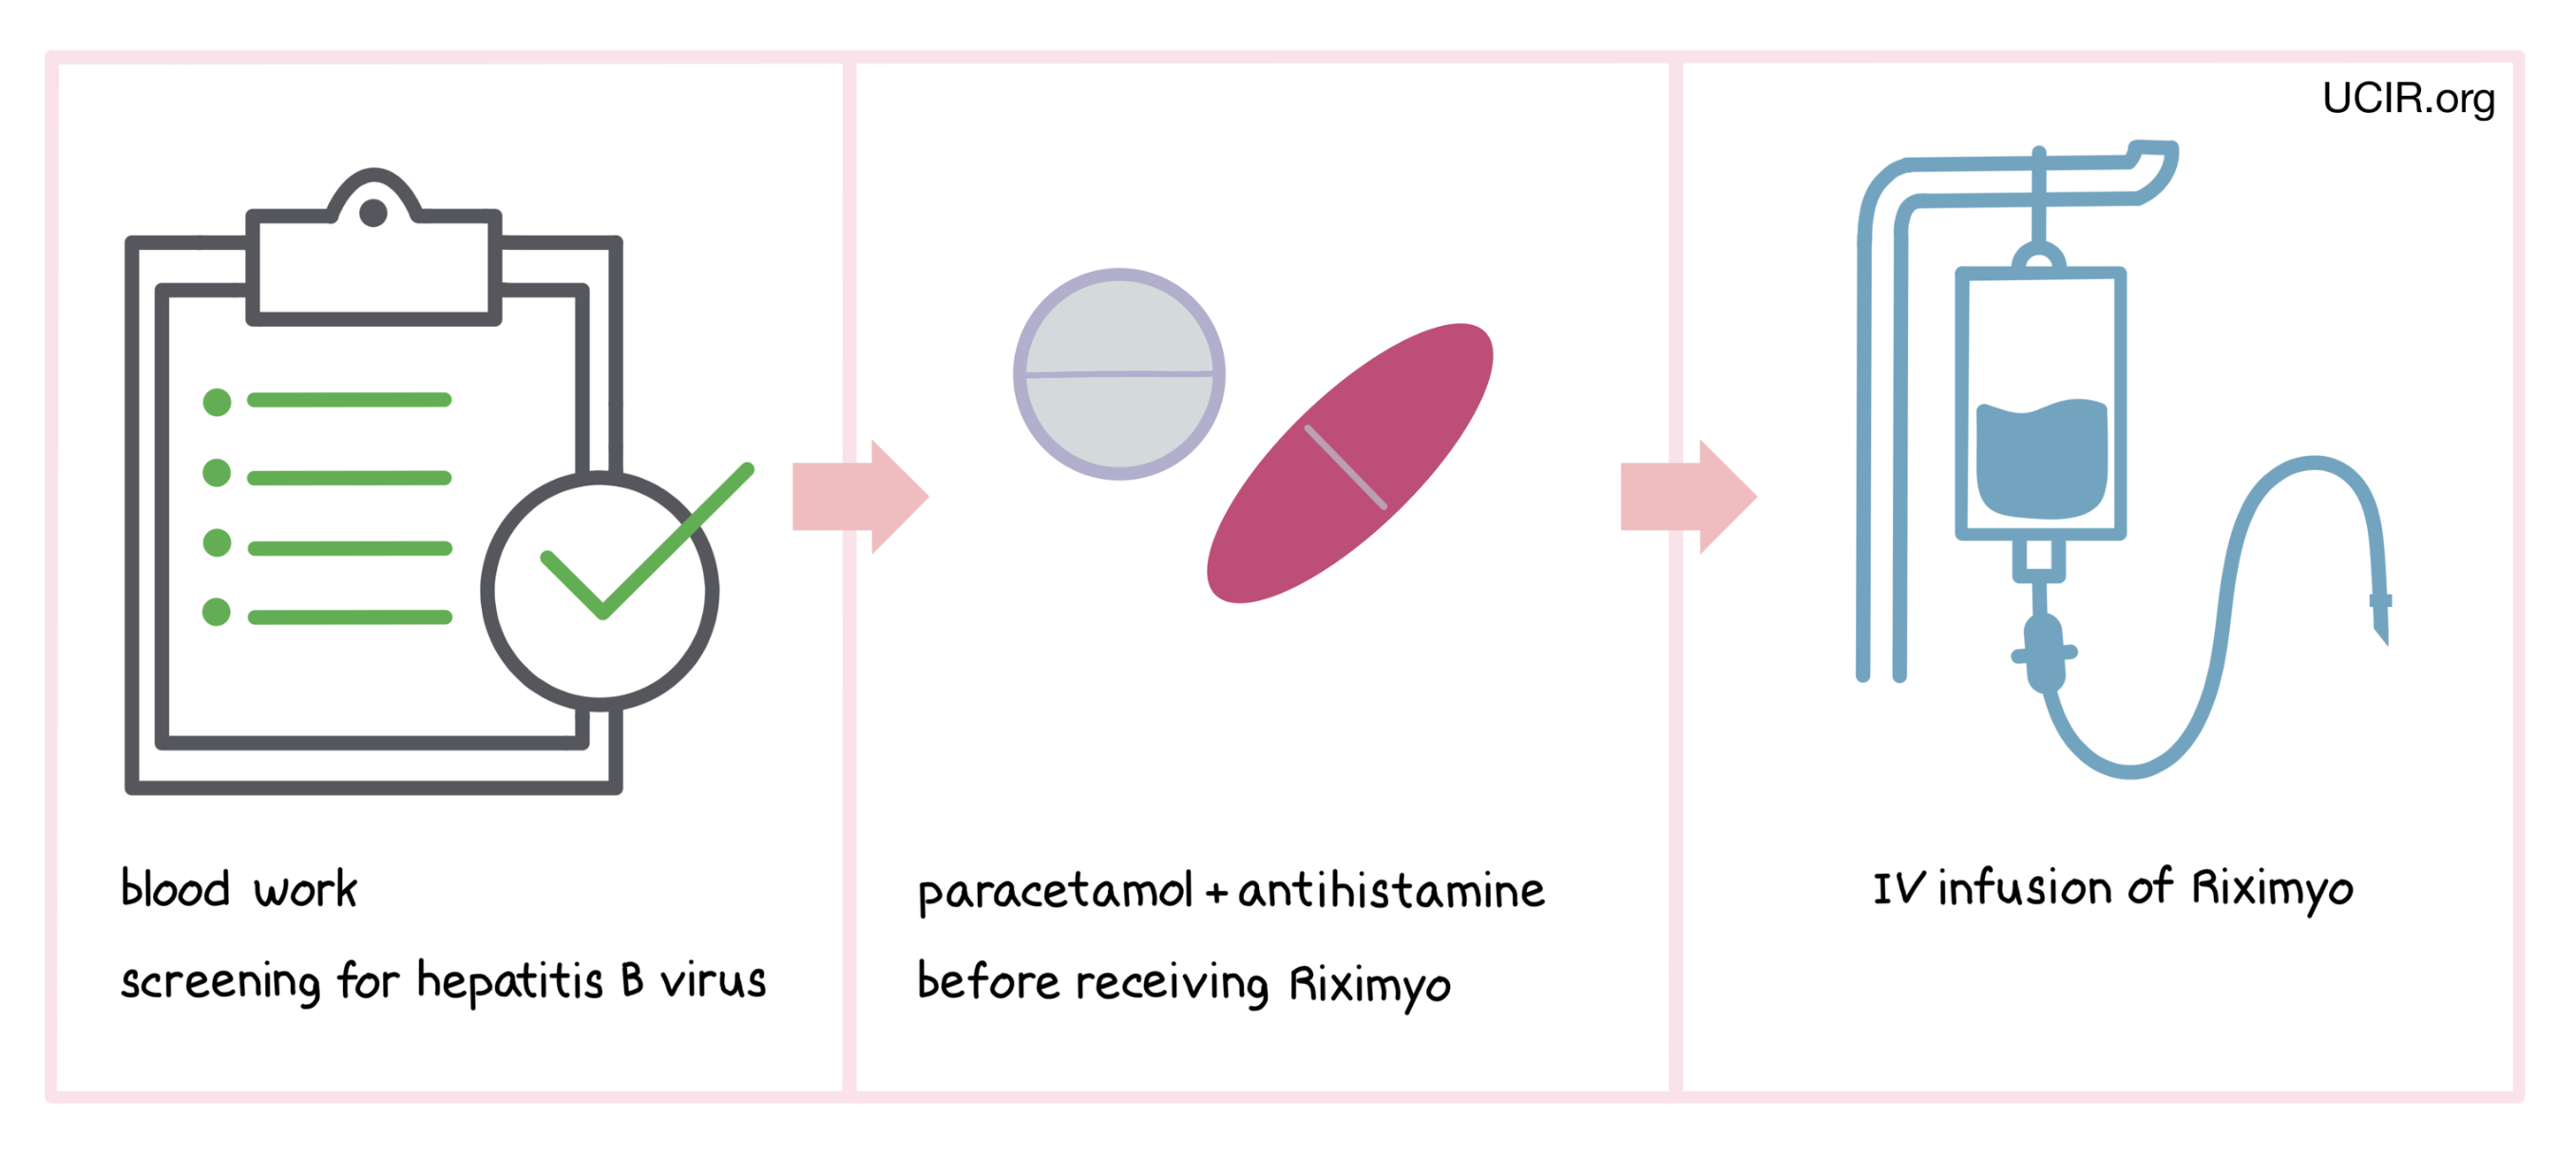 Illustration showing how Riximyo is administered to patients